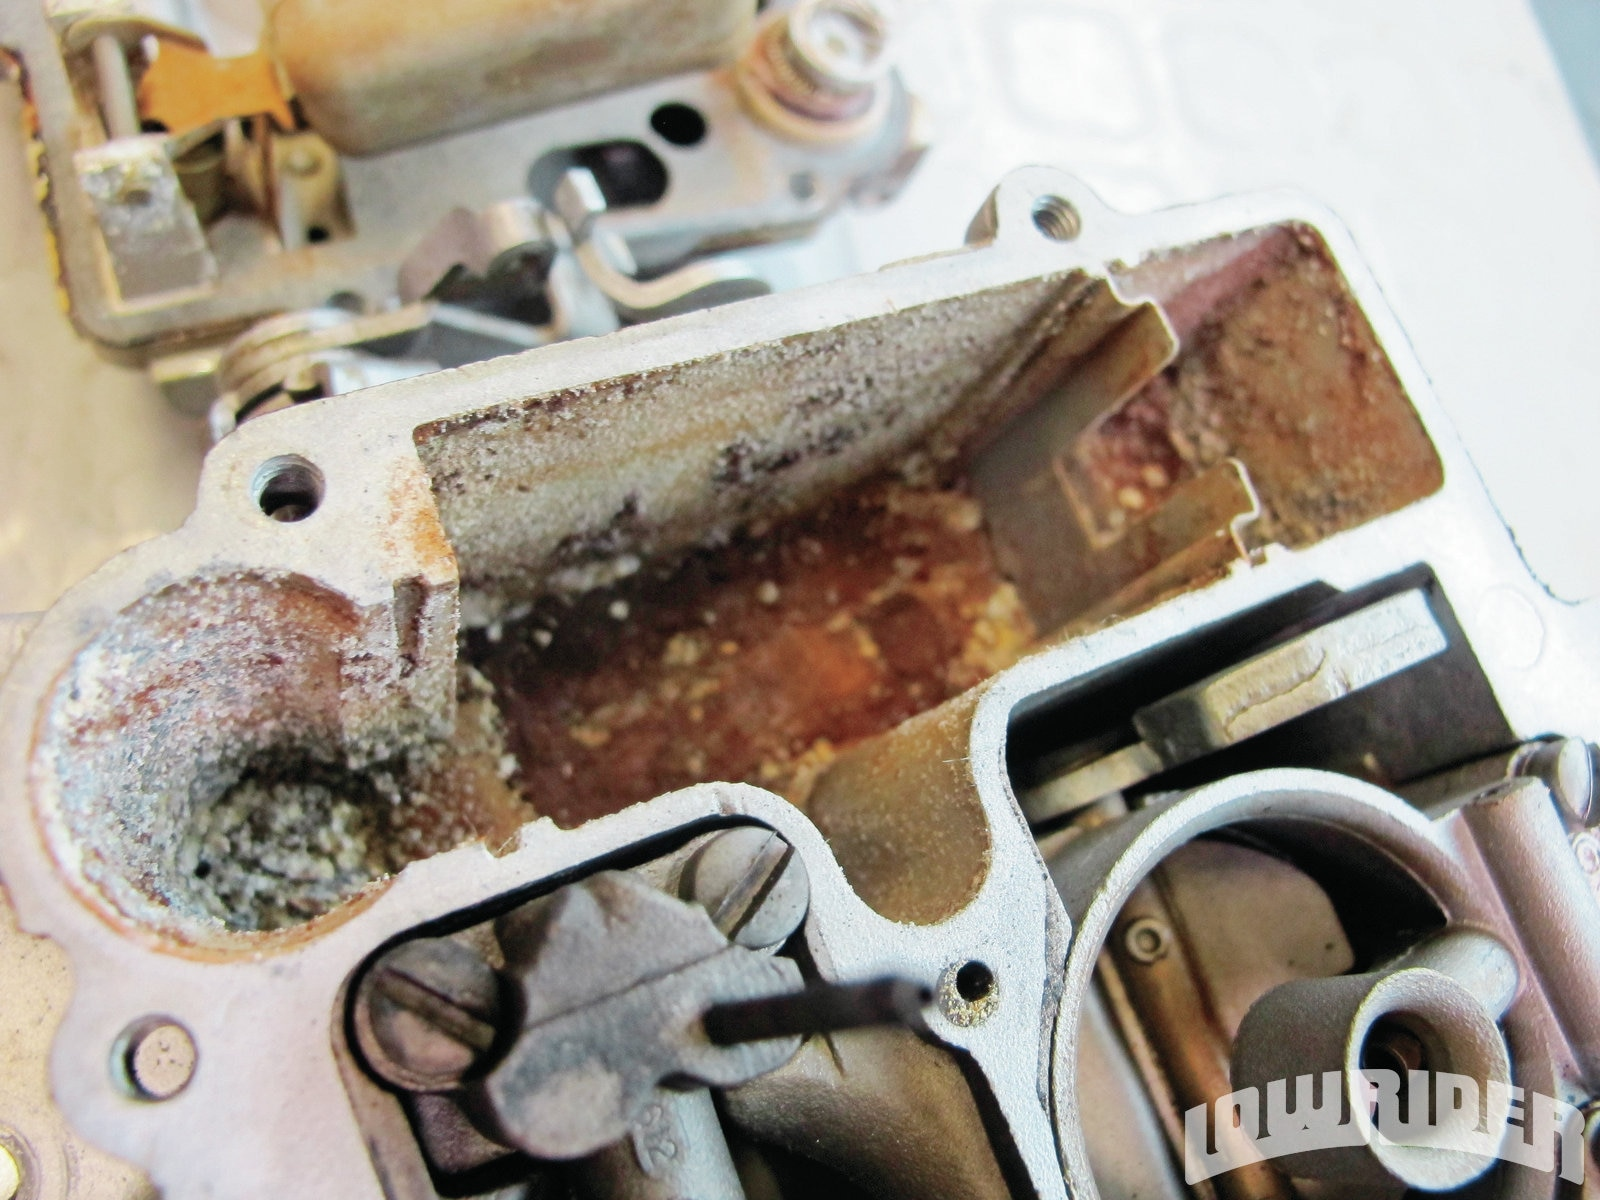 <strong>4</strong>. This carb had bad residue from its years of service.